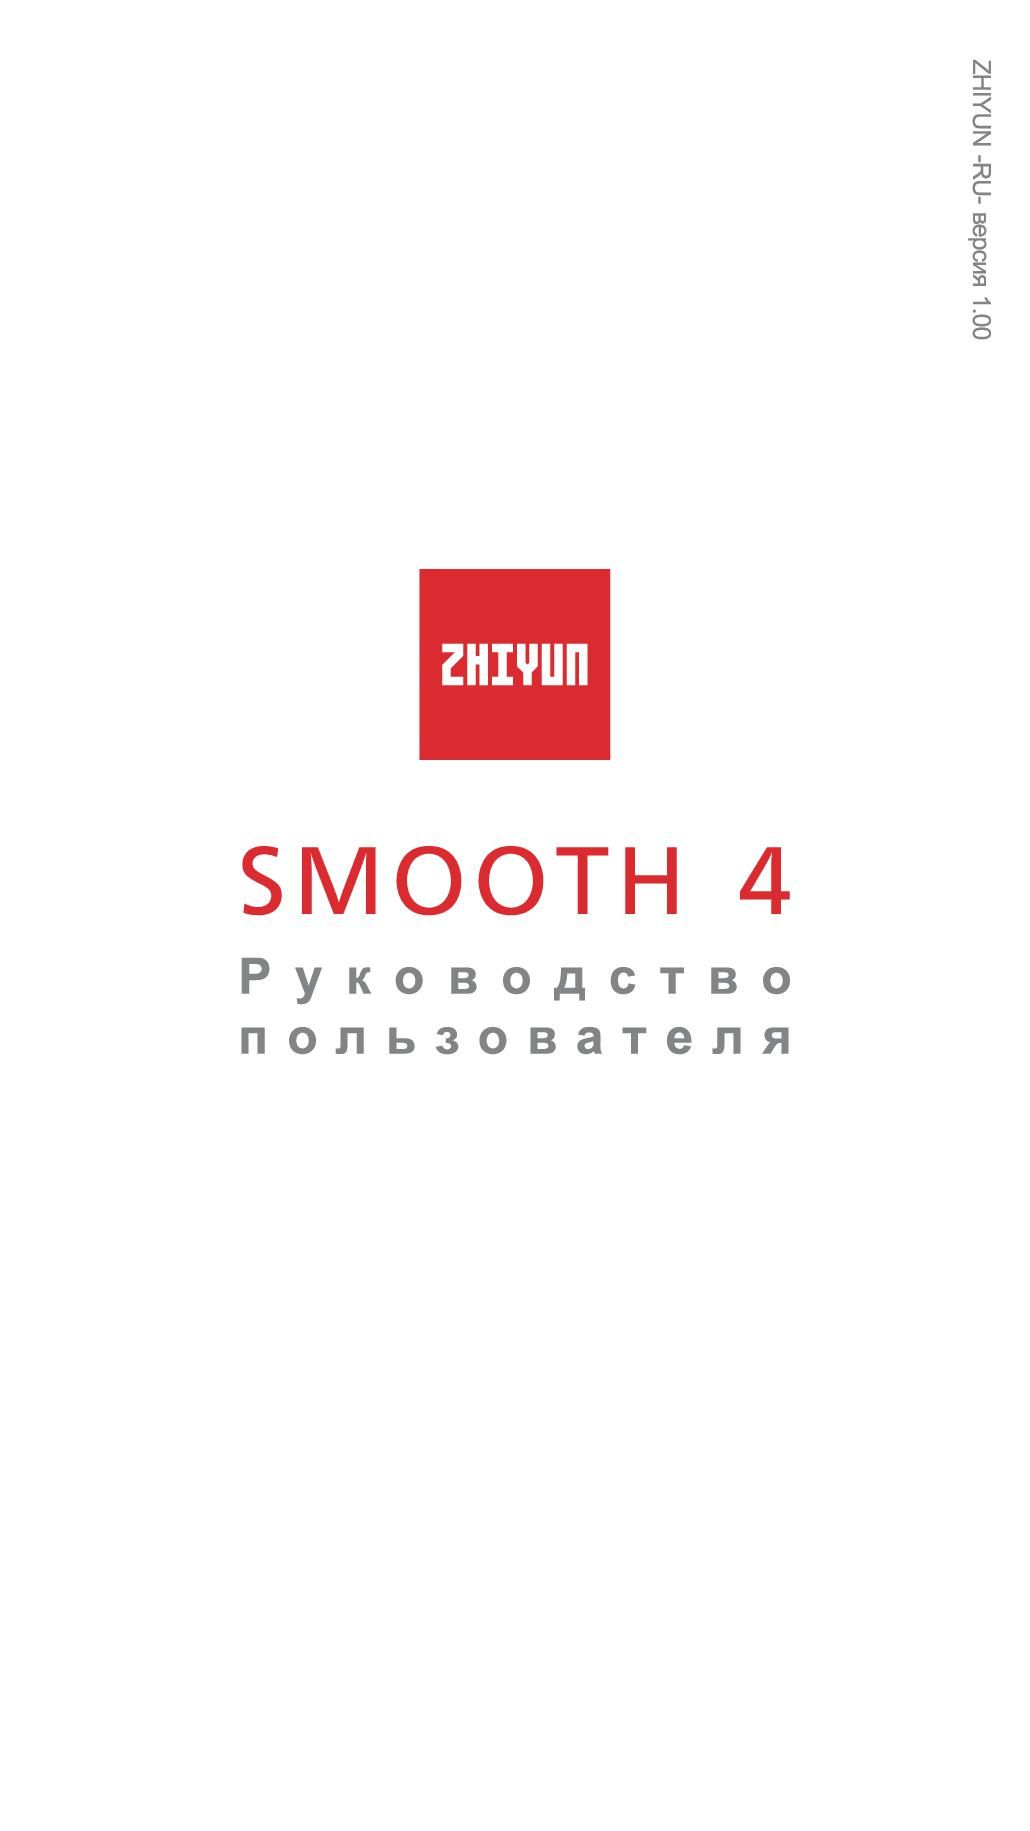 Zhiyun Smooth 4 инструкция на русском